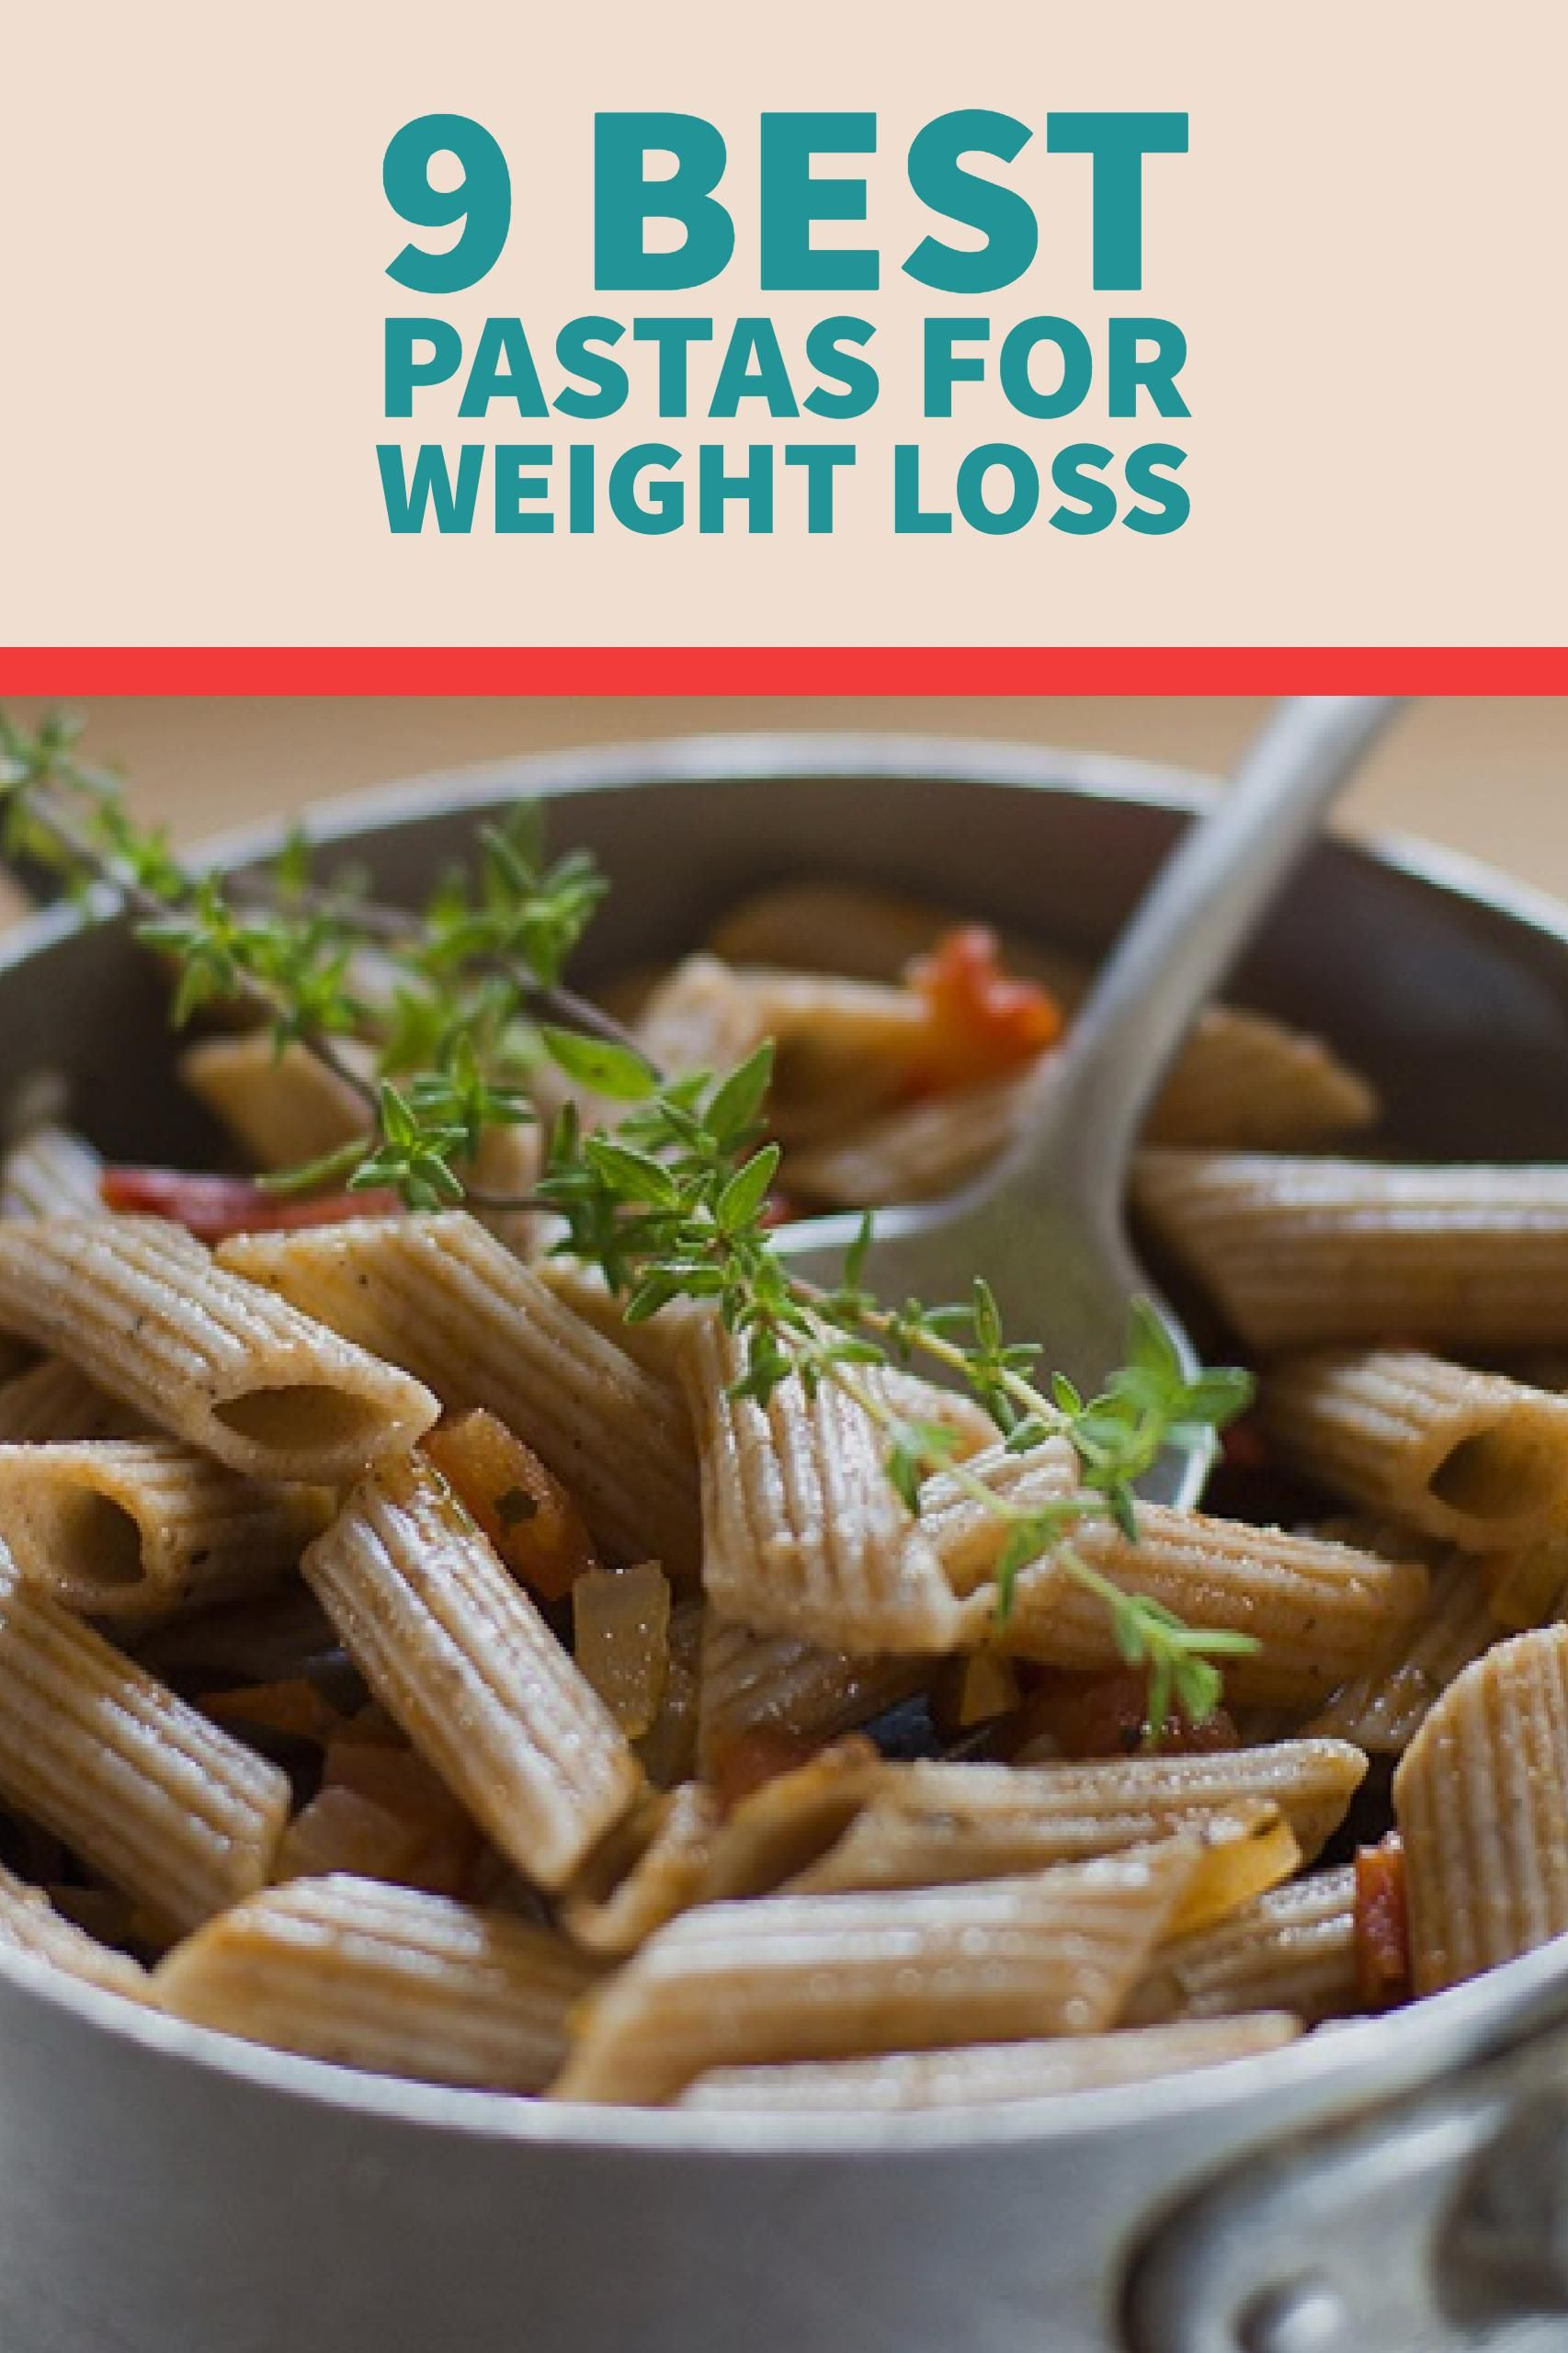 9 Best Pastas for Weight Loss